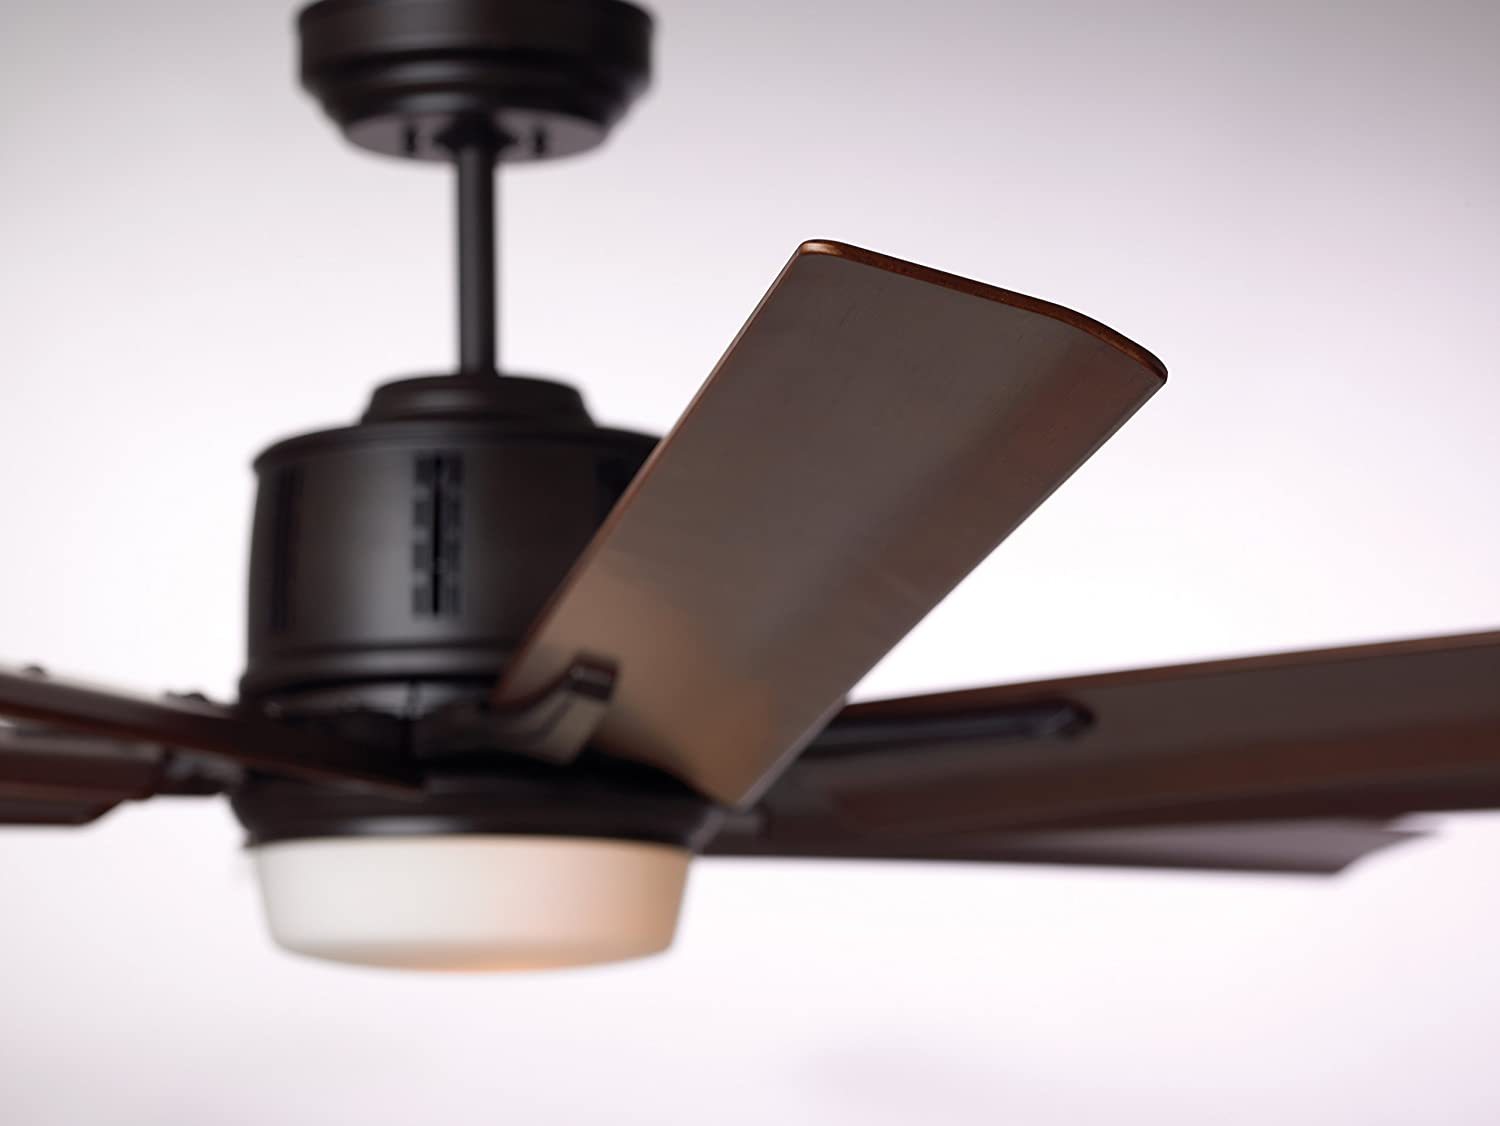 Emerson aira eco 72 inch oil rubbed bronze modern ceiling fan free - Emerson Ceiling Fans Cf985orb Damp Rated Aira Eco Modern Ceiling Fan With Light And Wall Control Oil Rubbed Bronze Finish Amazon Com